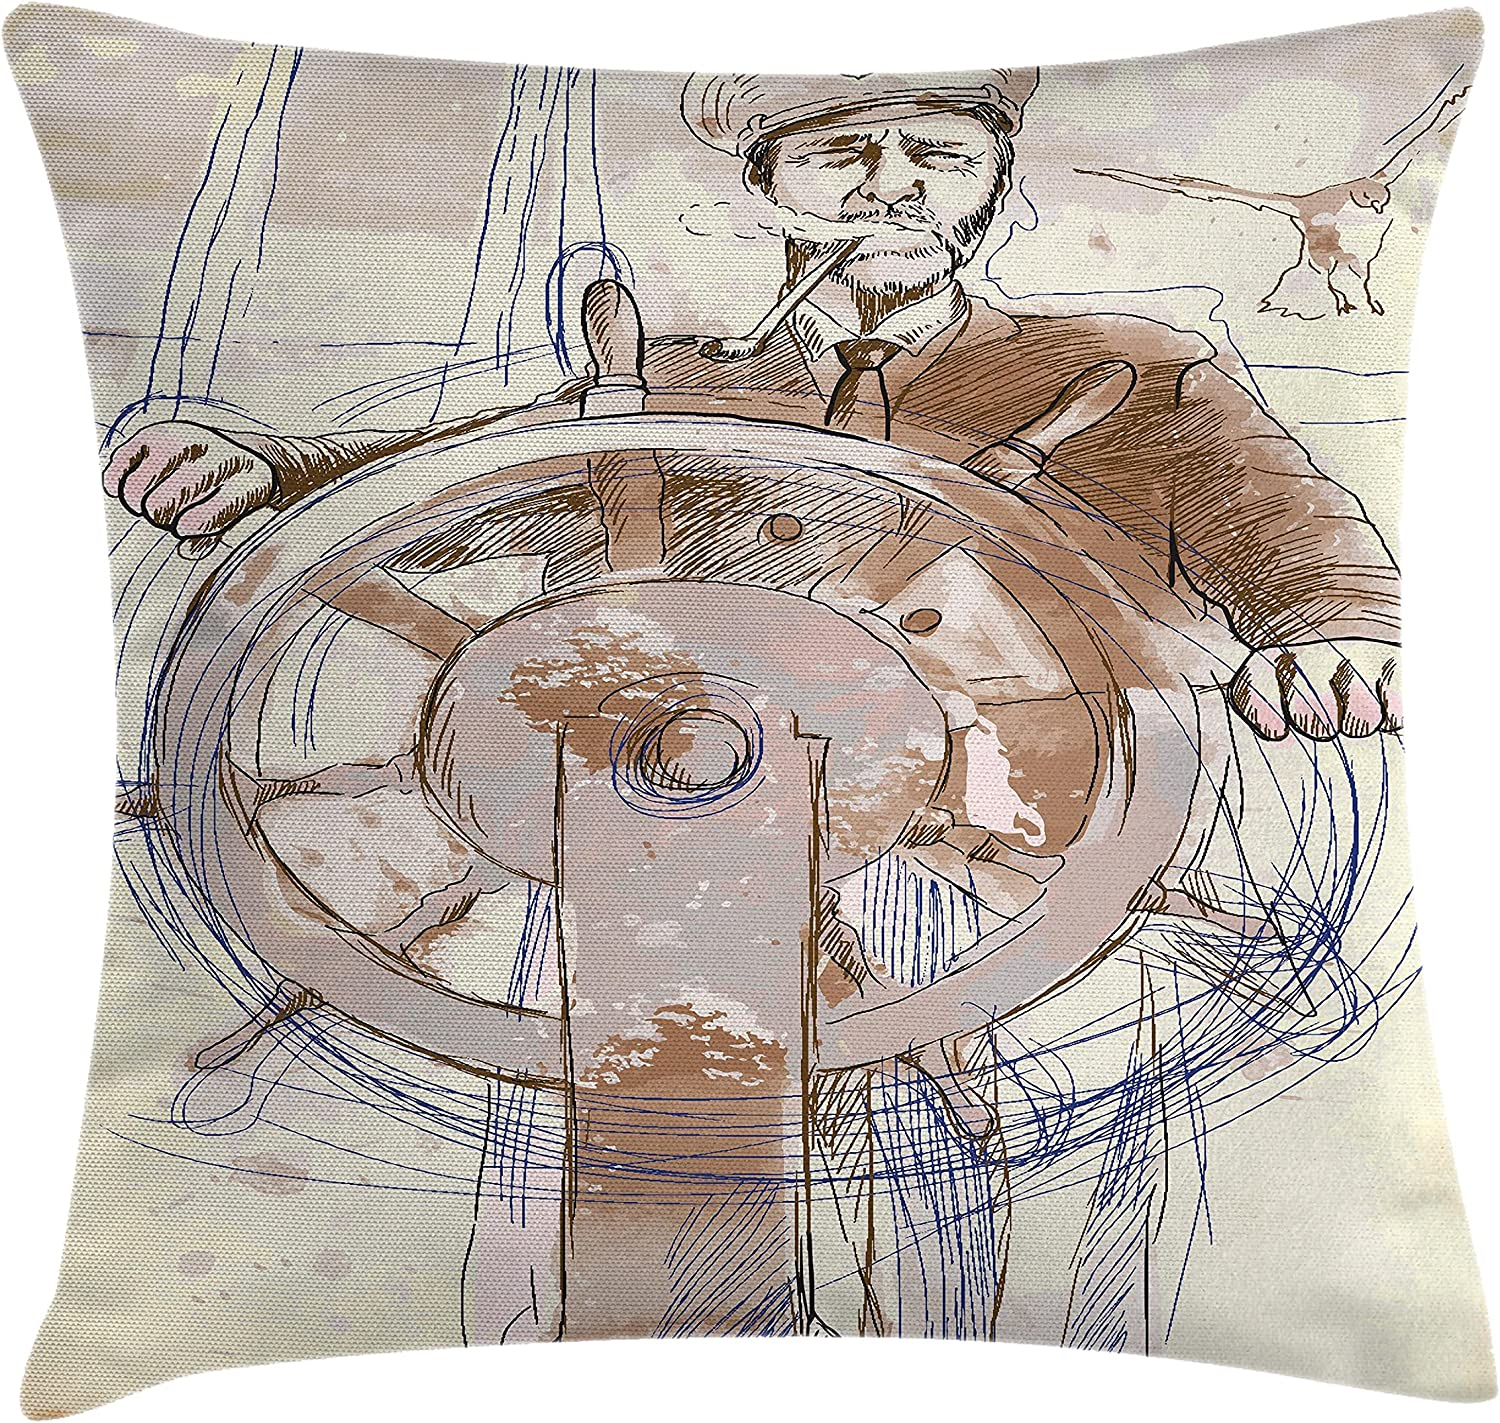 Amazon Com Ambesonne Nautical Throw Pillow Cushion Cover Sea Captain The Leader Seaman Sketch Art Navigation Navy Classical Flying Bird Decorative Square Accent Pillow Case 20 X 20 Brown Cream Home Kitchen